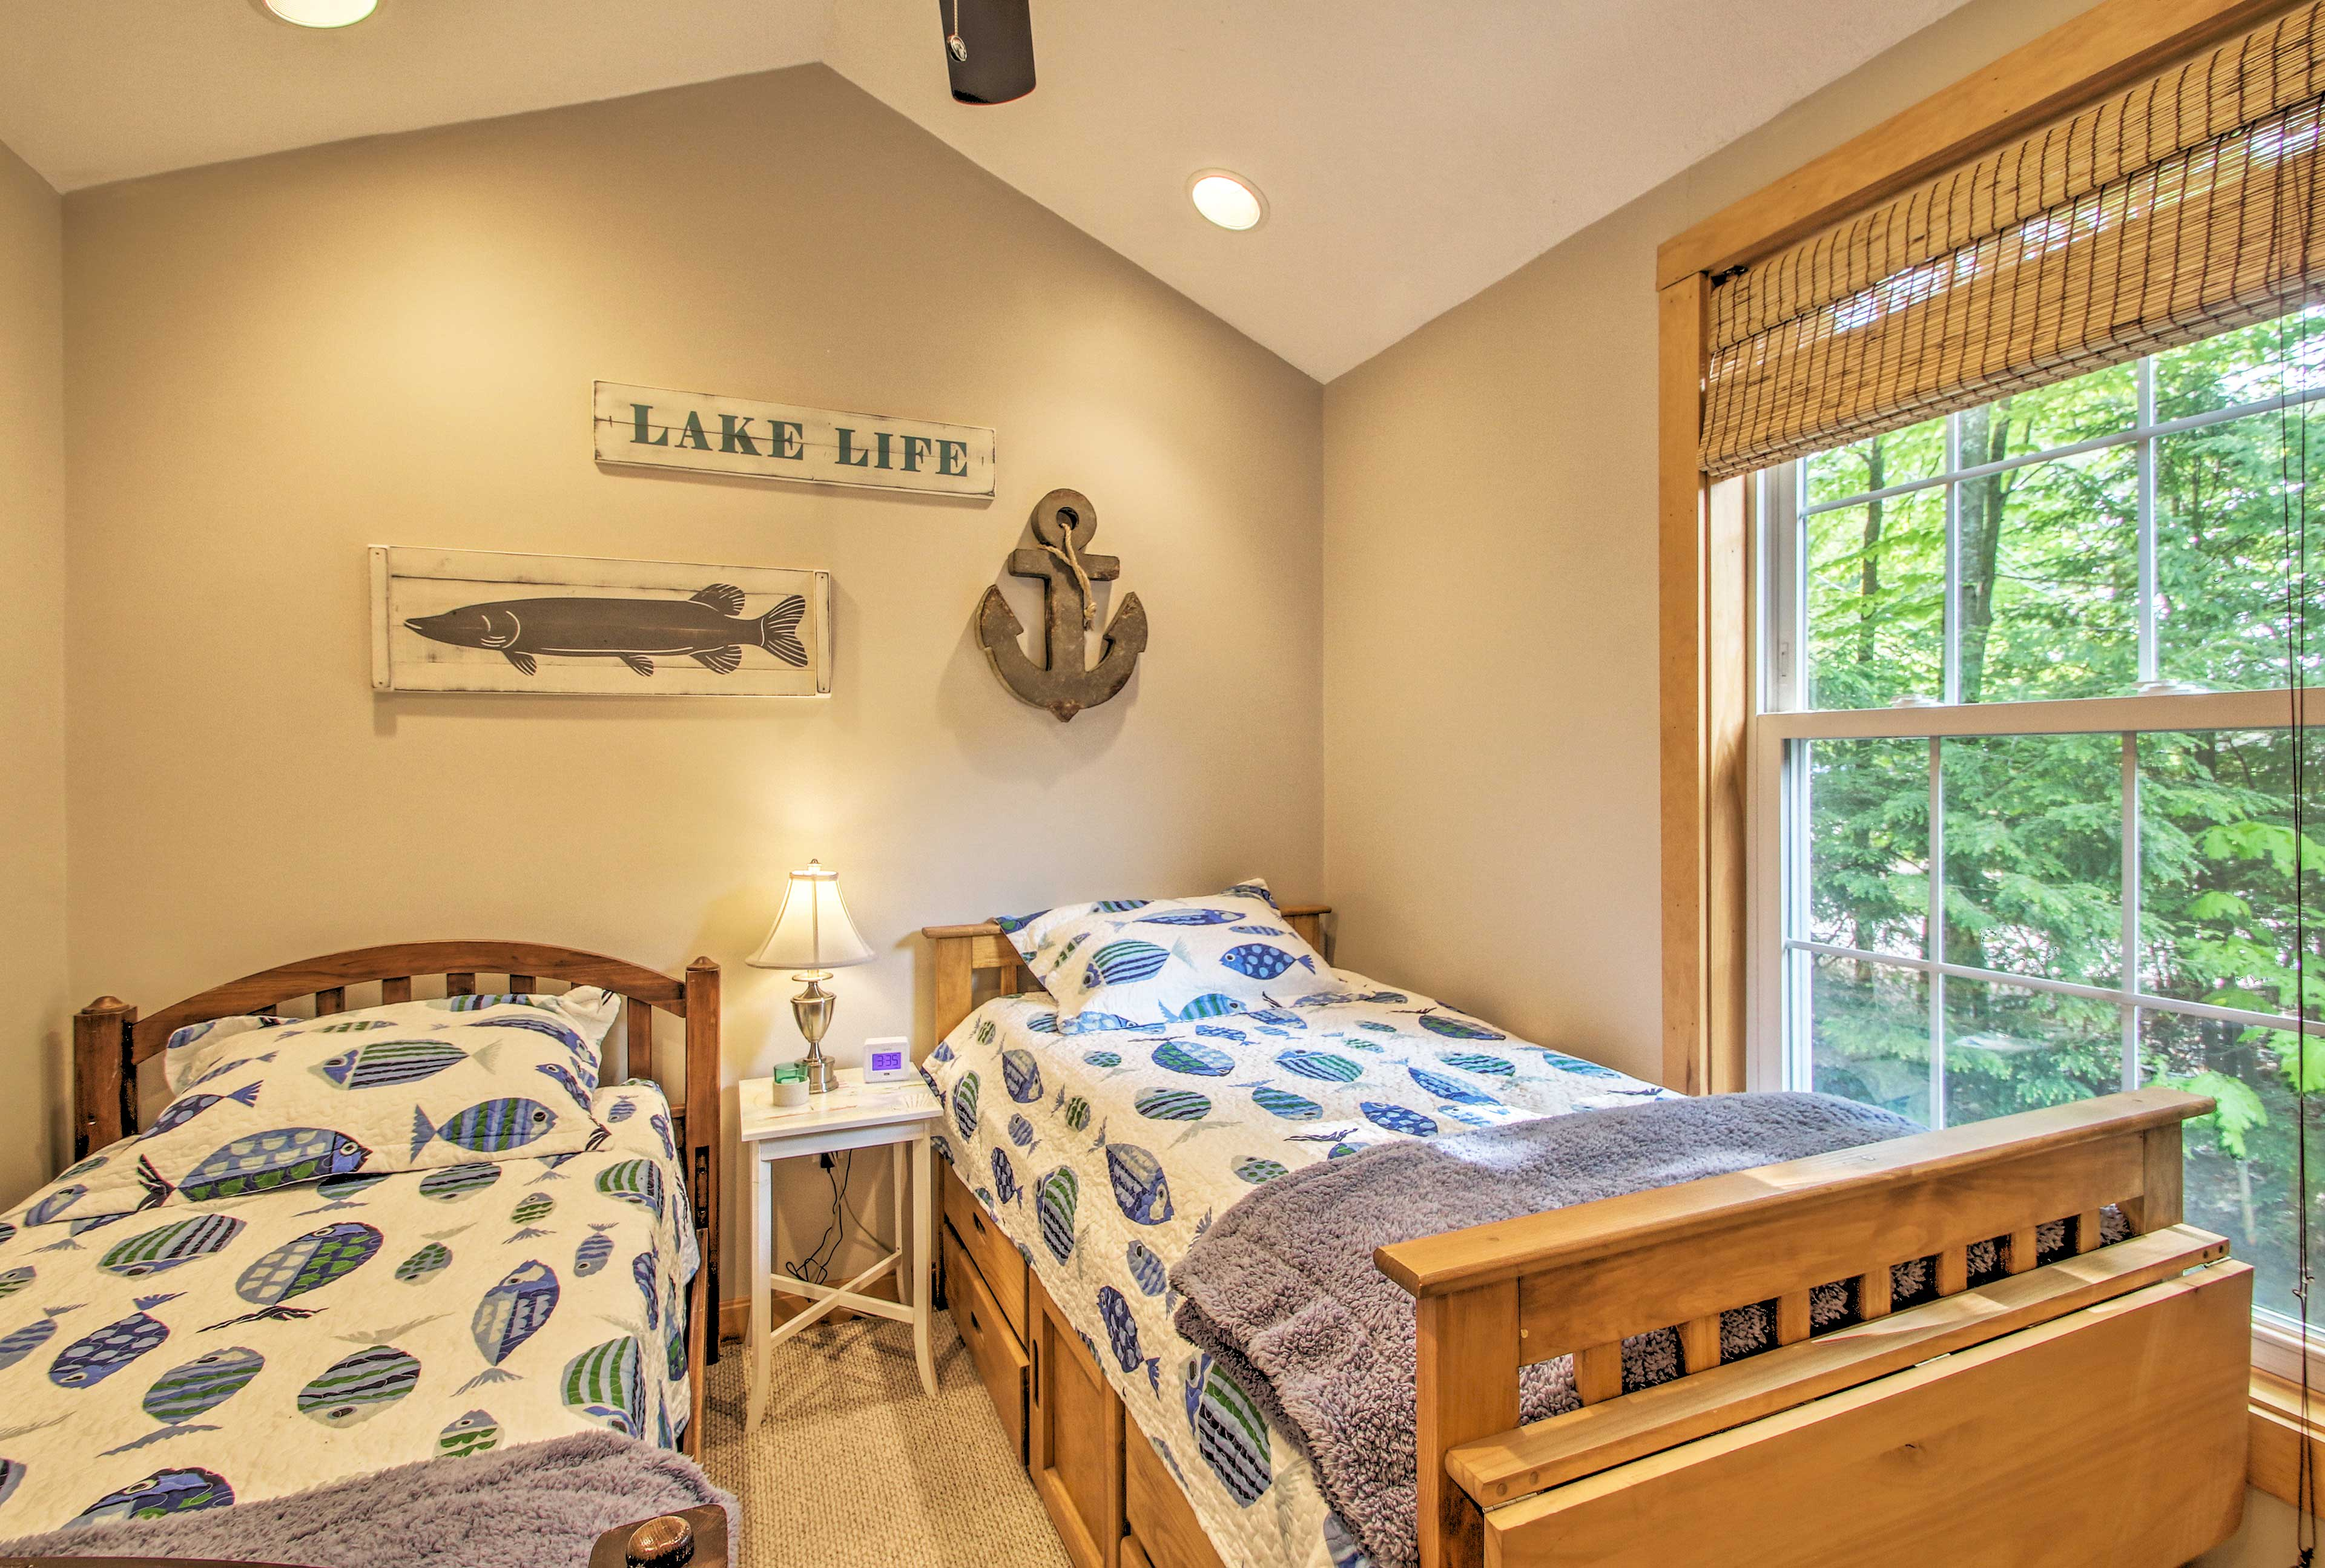 You'll find a set of twin beds in this room.